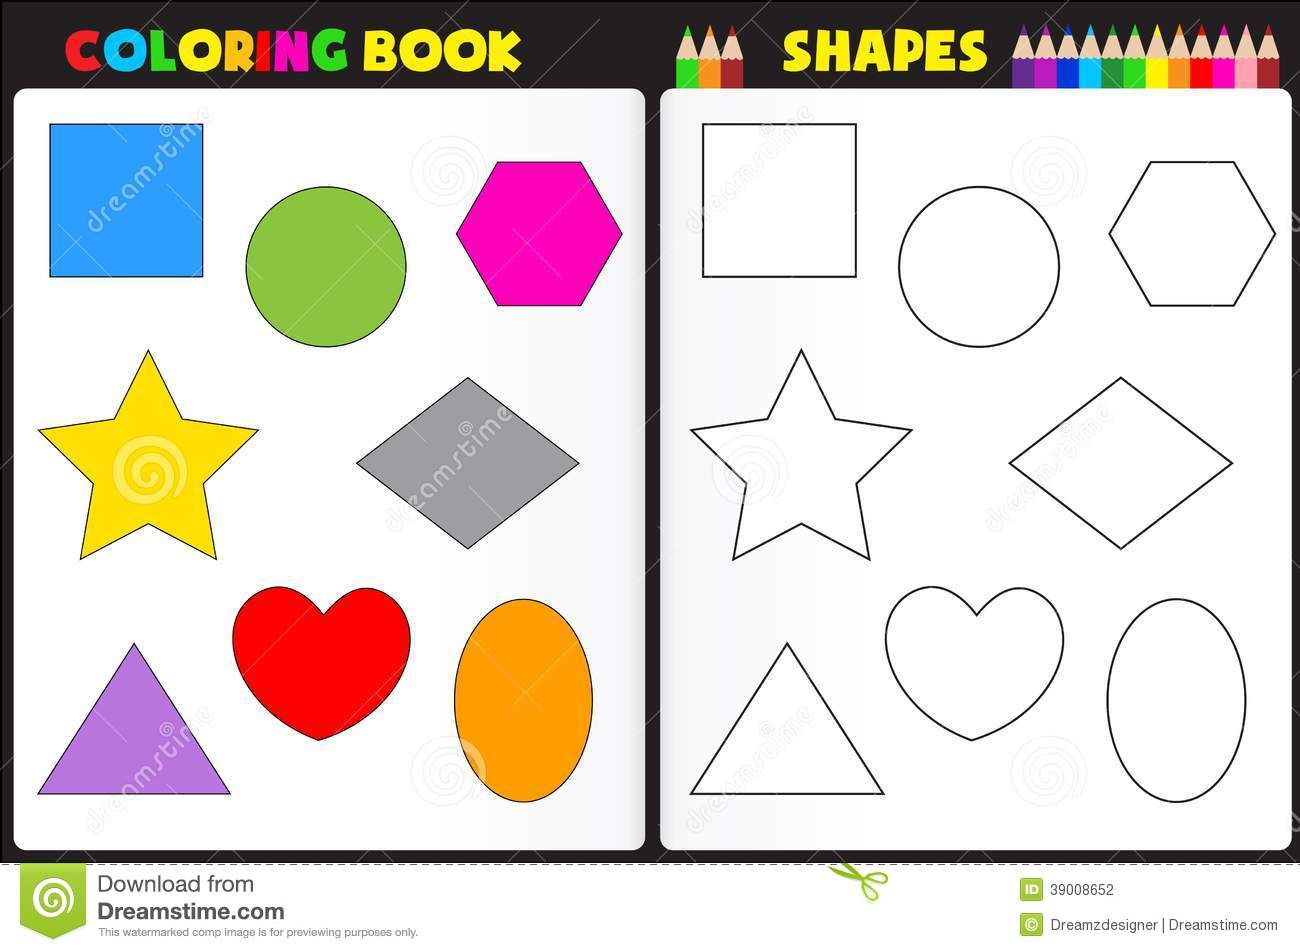 Coloring Book Shapes Stock Vector - Image: 39008652